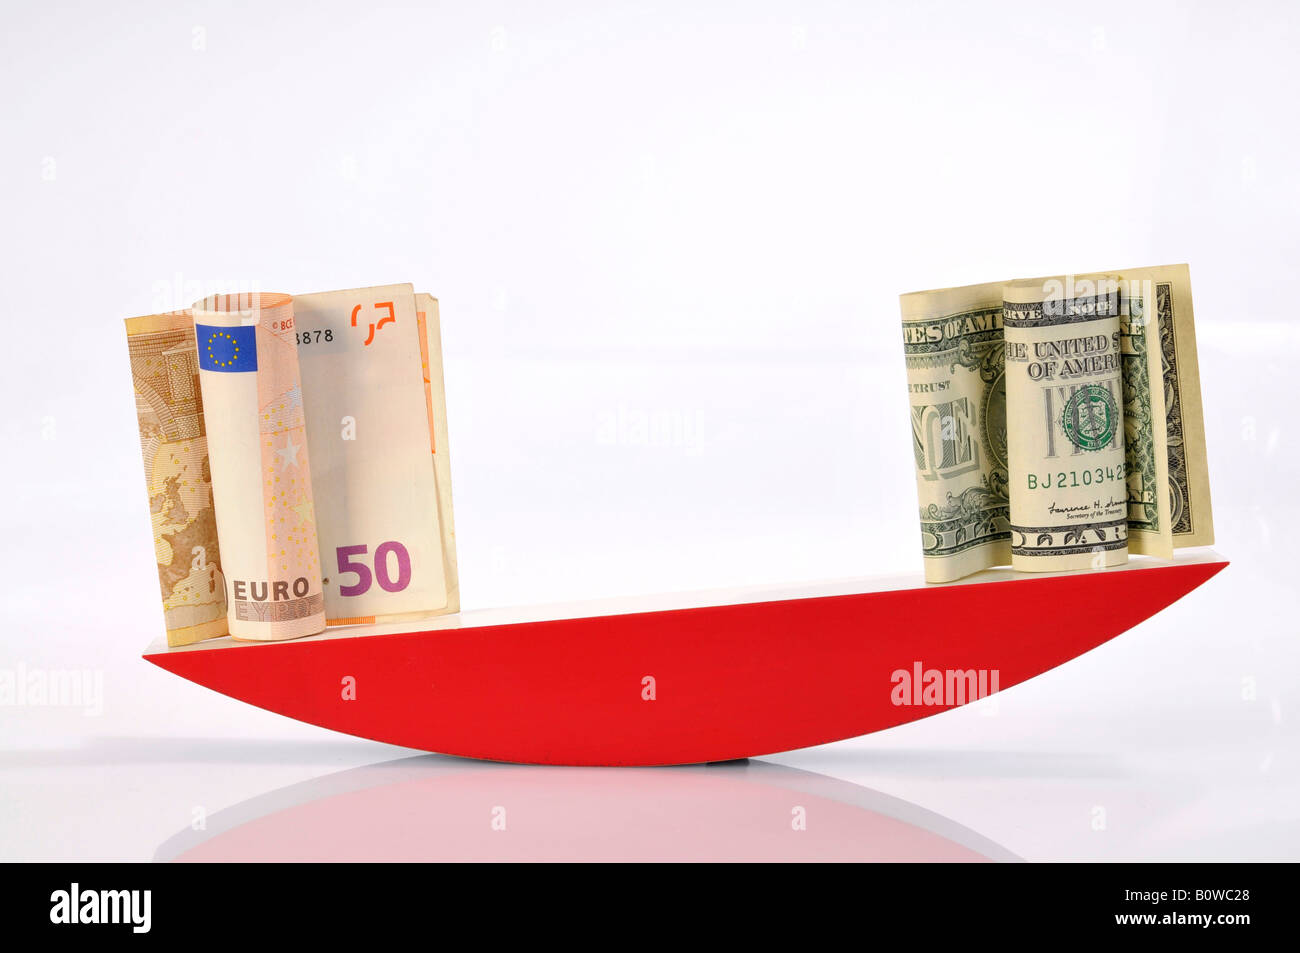 Euro banknotes and US Dollar bills on a scale - Stock Image